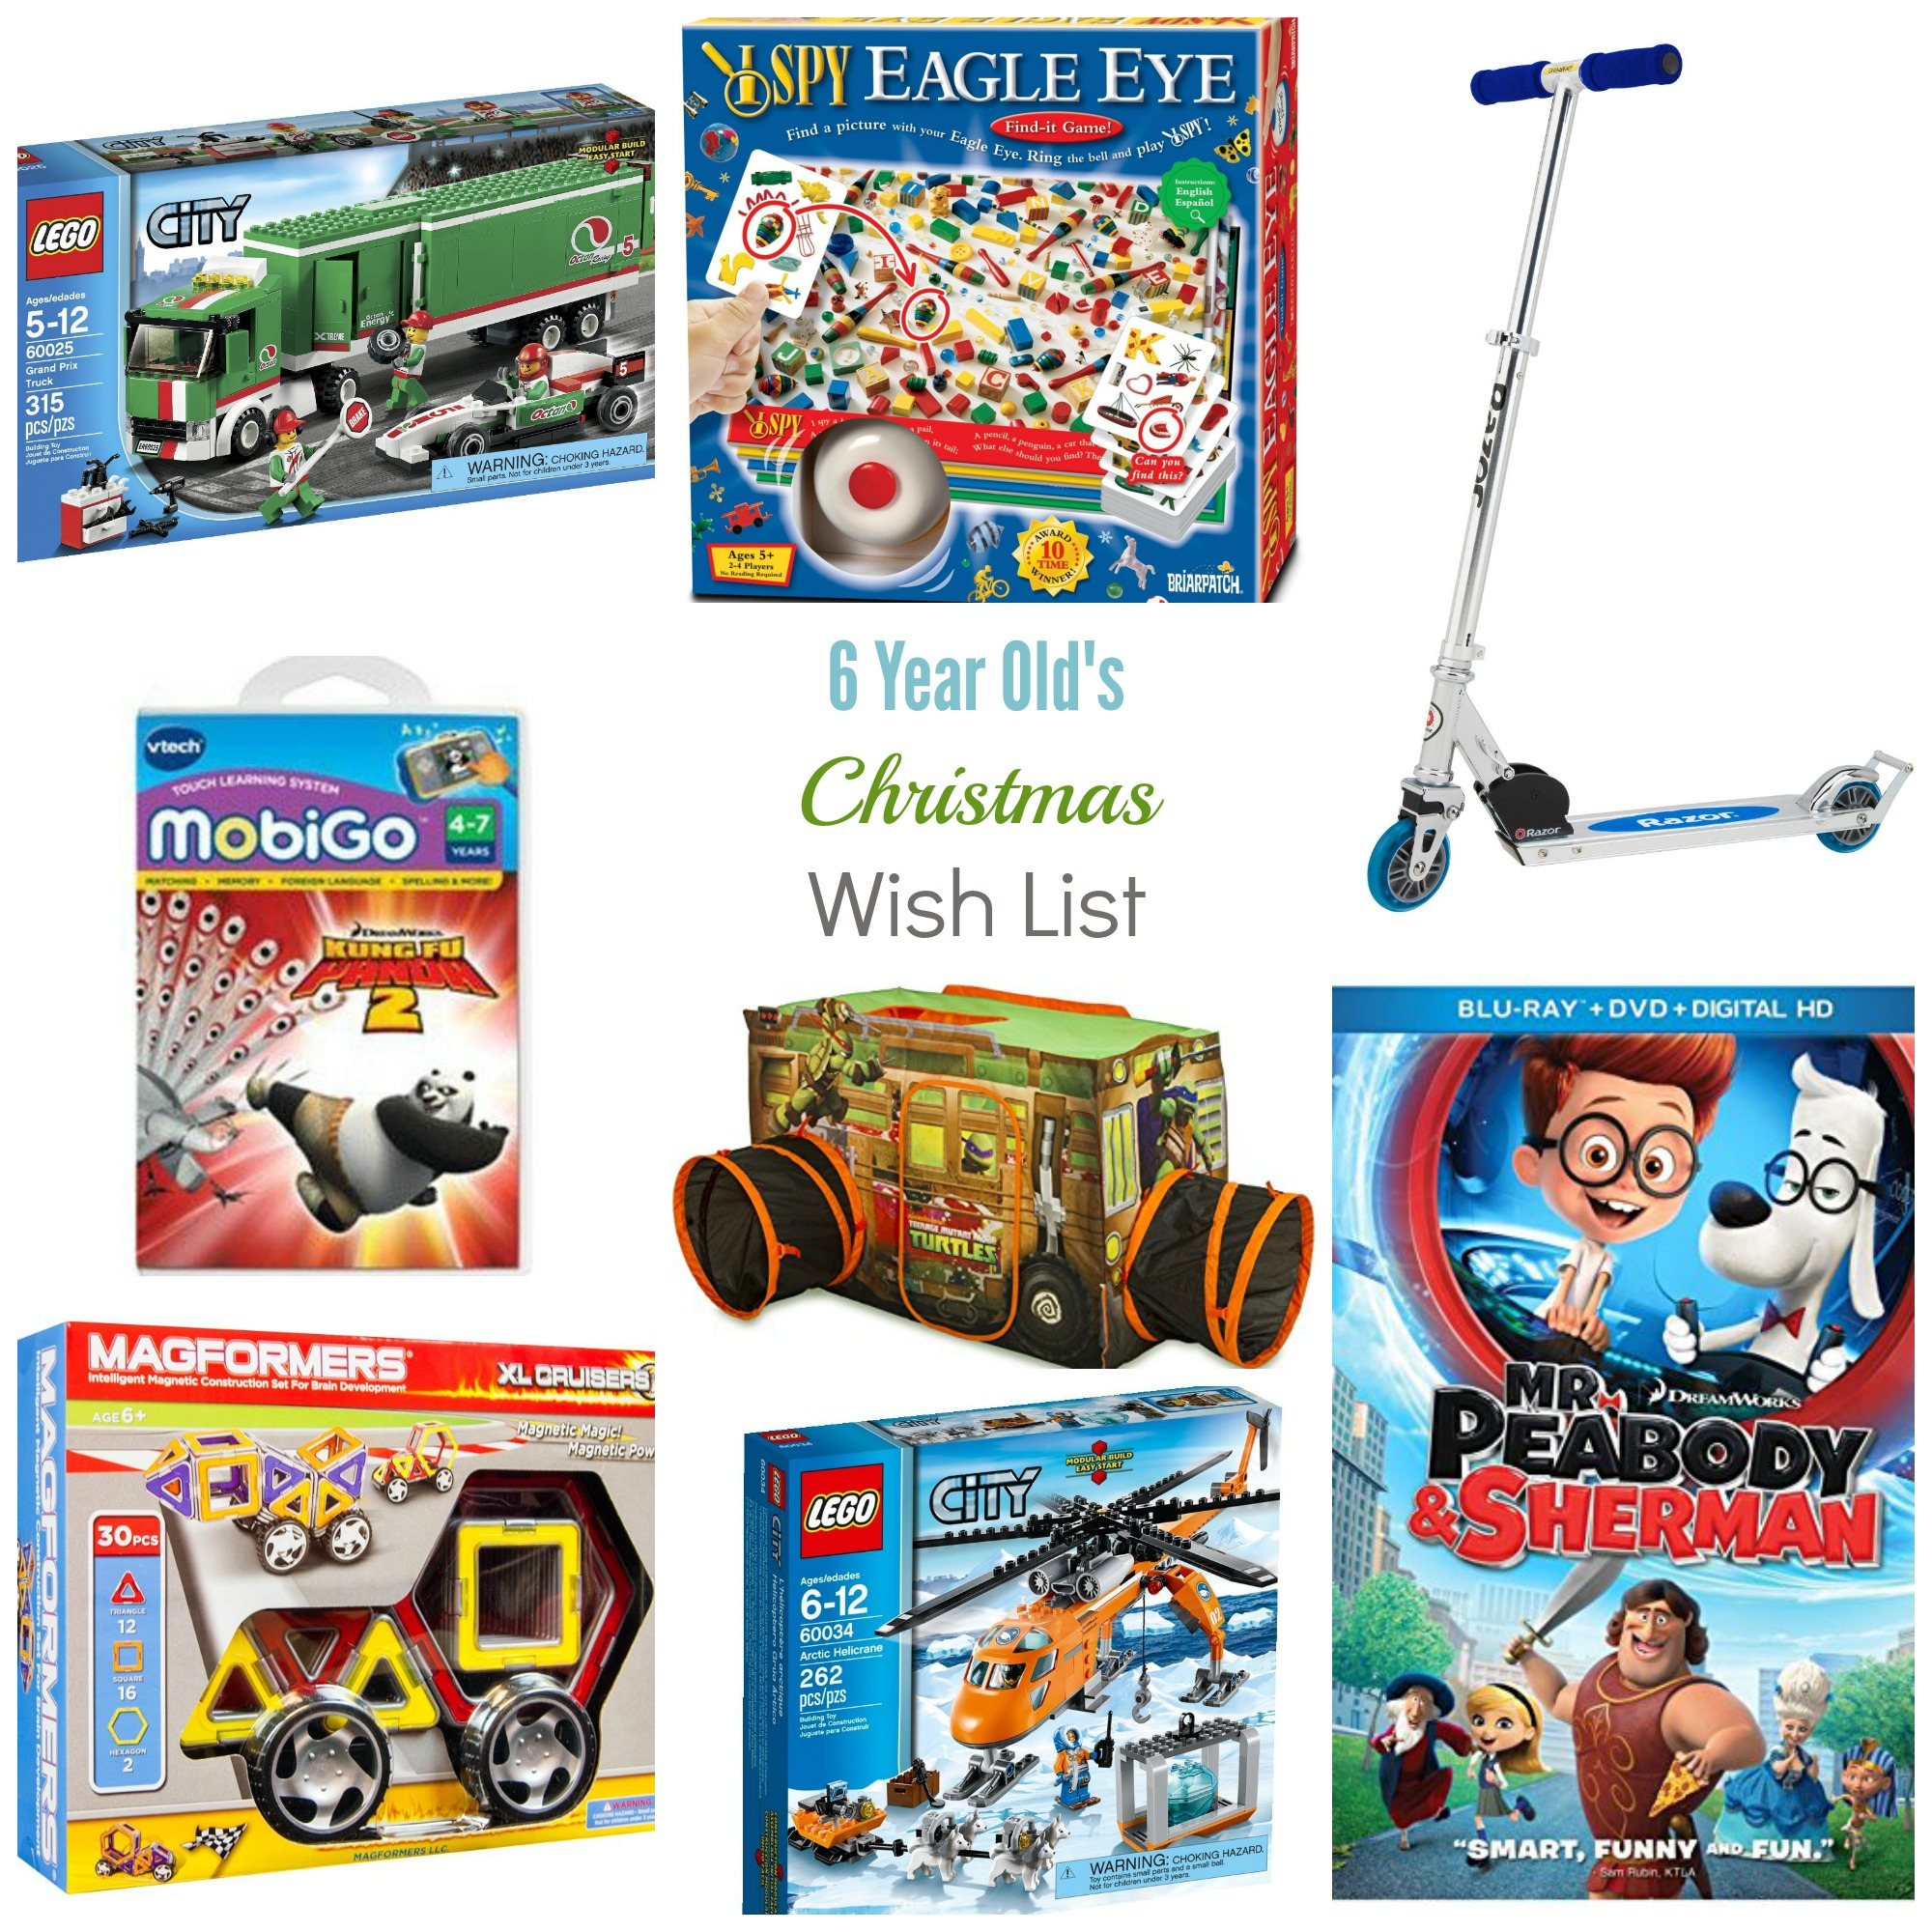 Christmas Wish List - 6 Year Old Boy